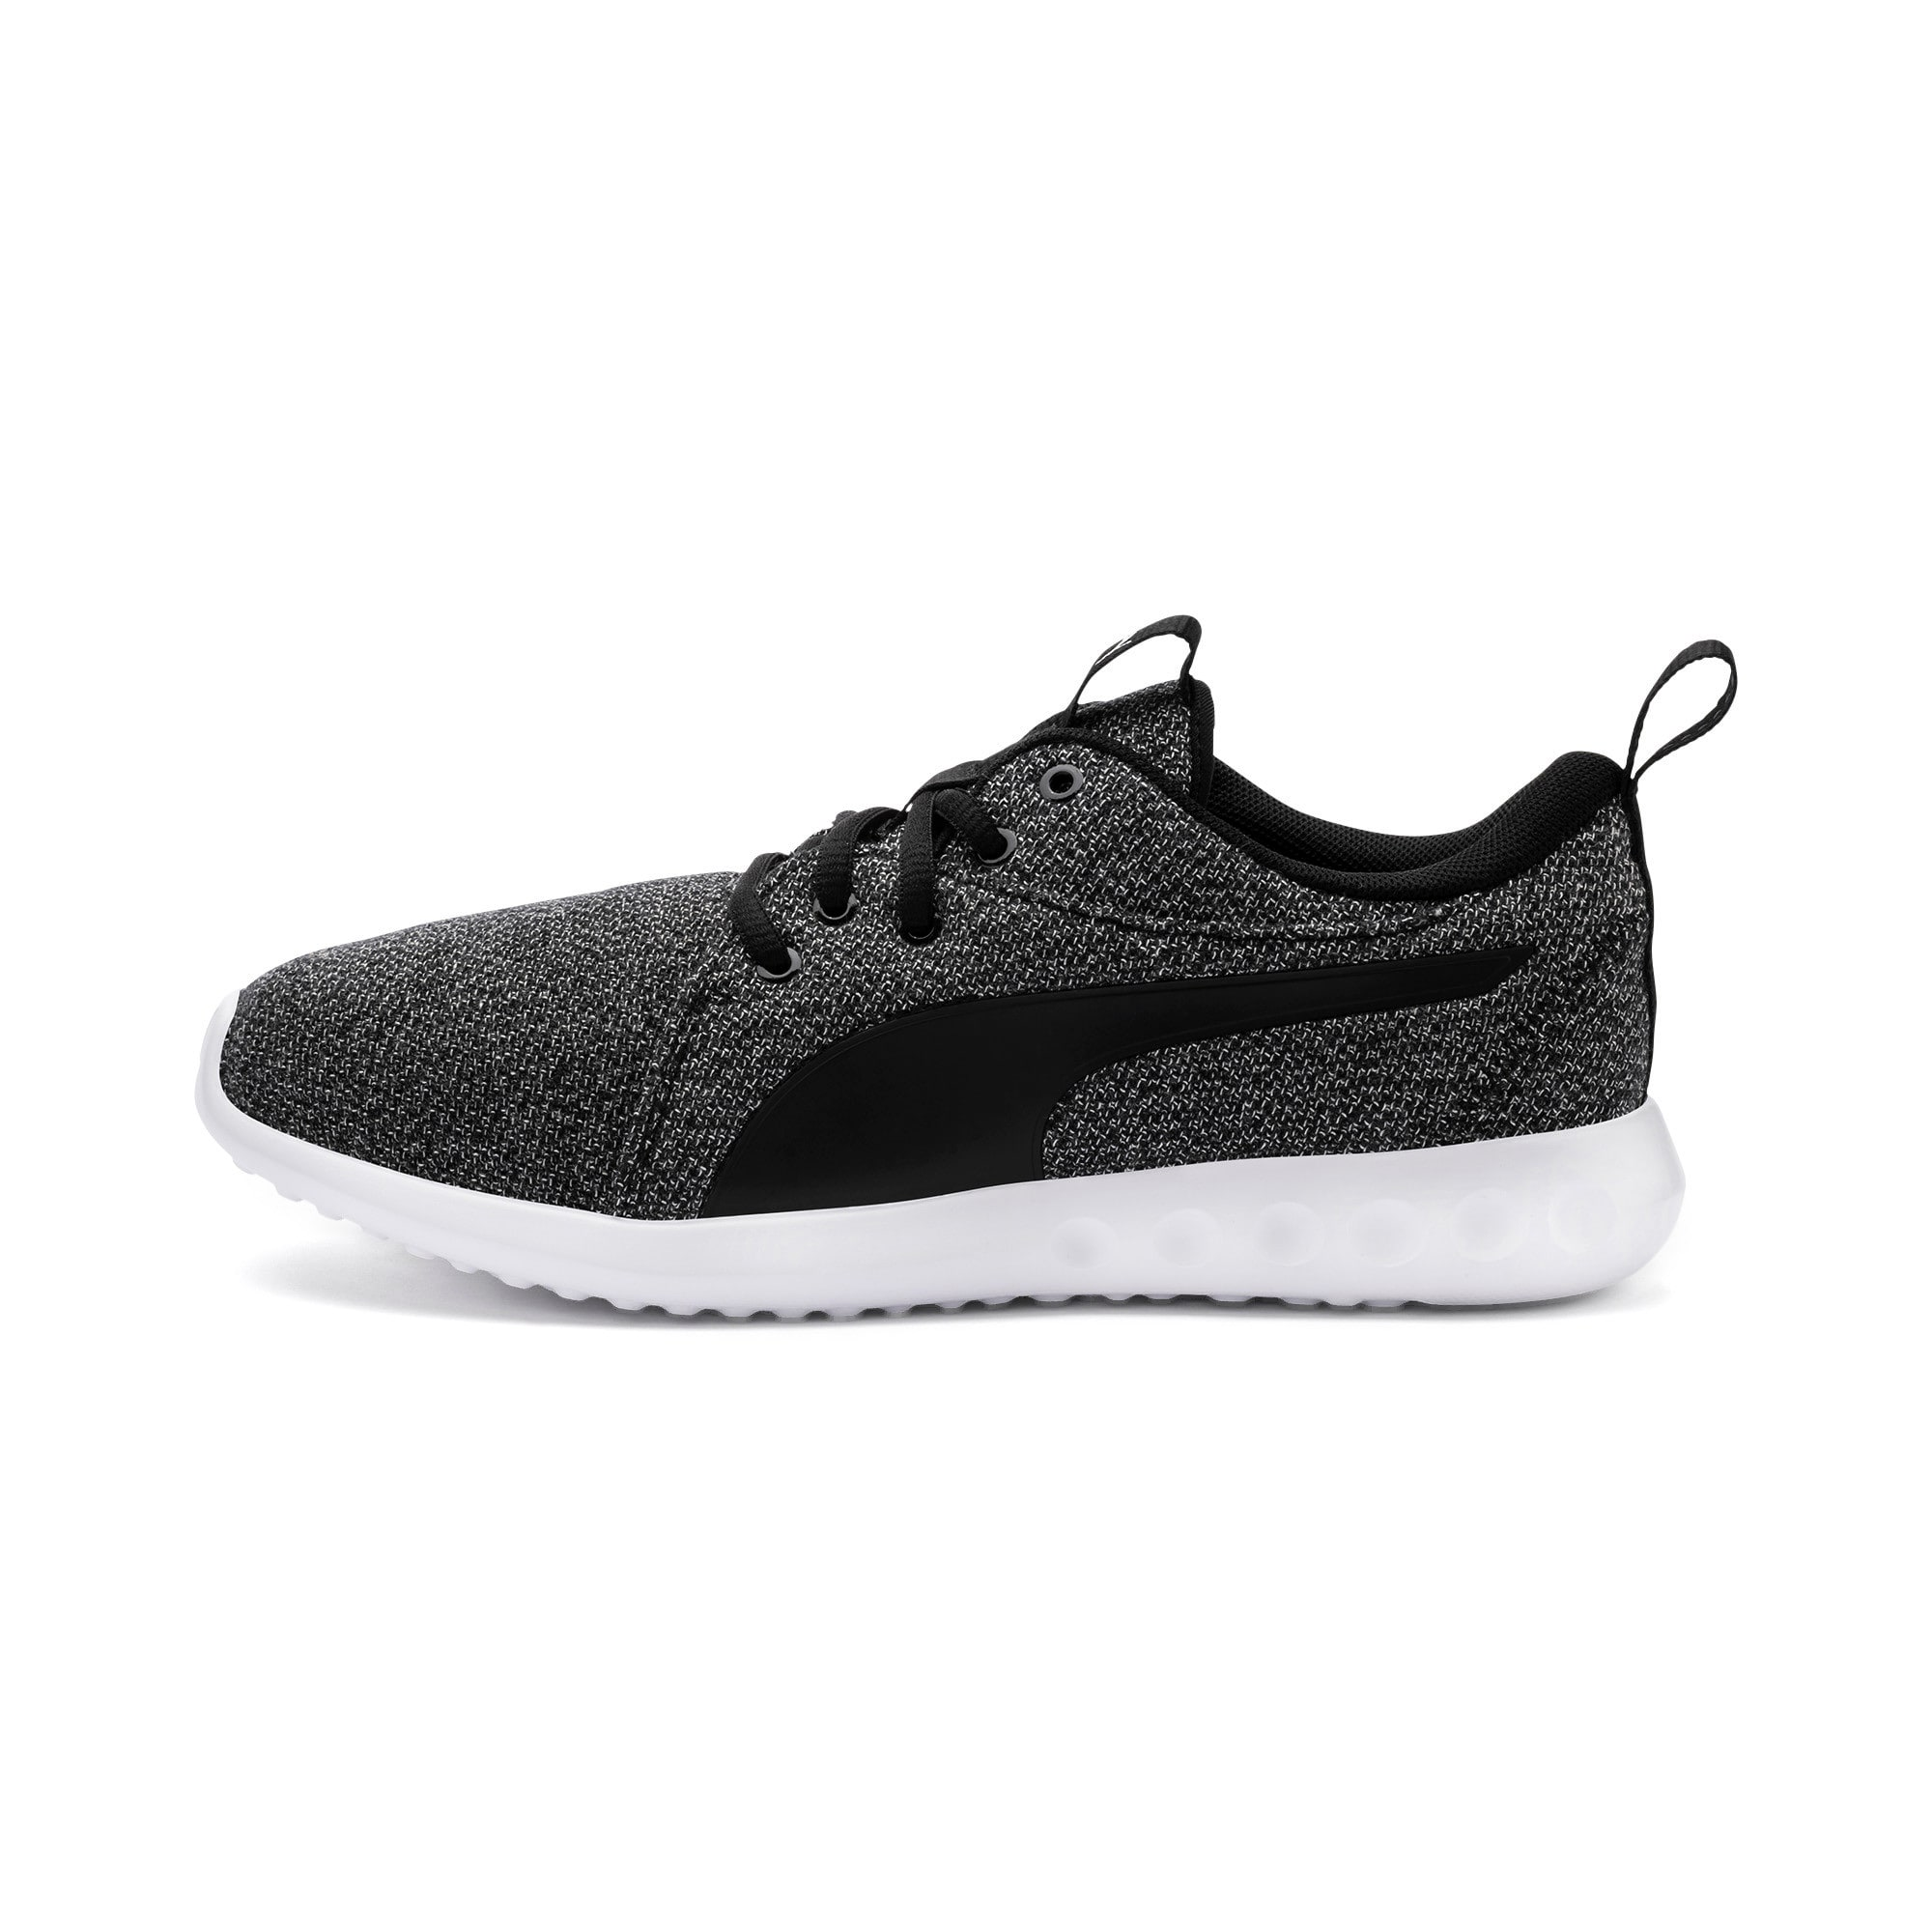 Thumbnail 1 of Carson 2 Knit Women's Trainers, Puma Black-Puma White, medium